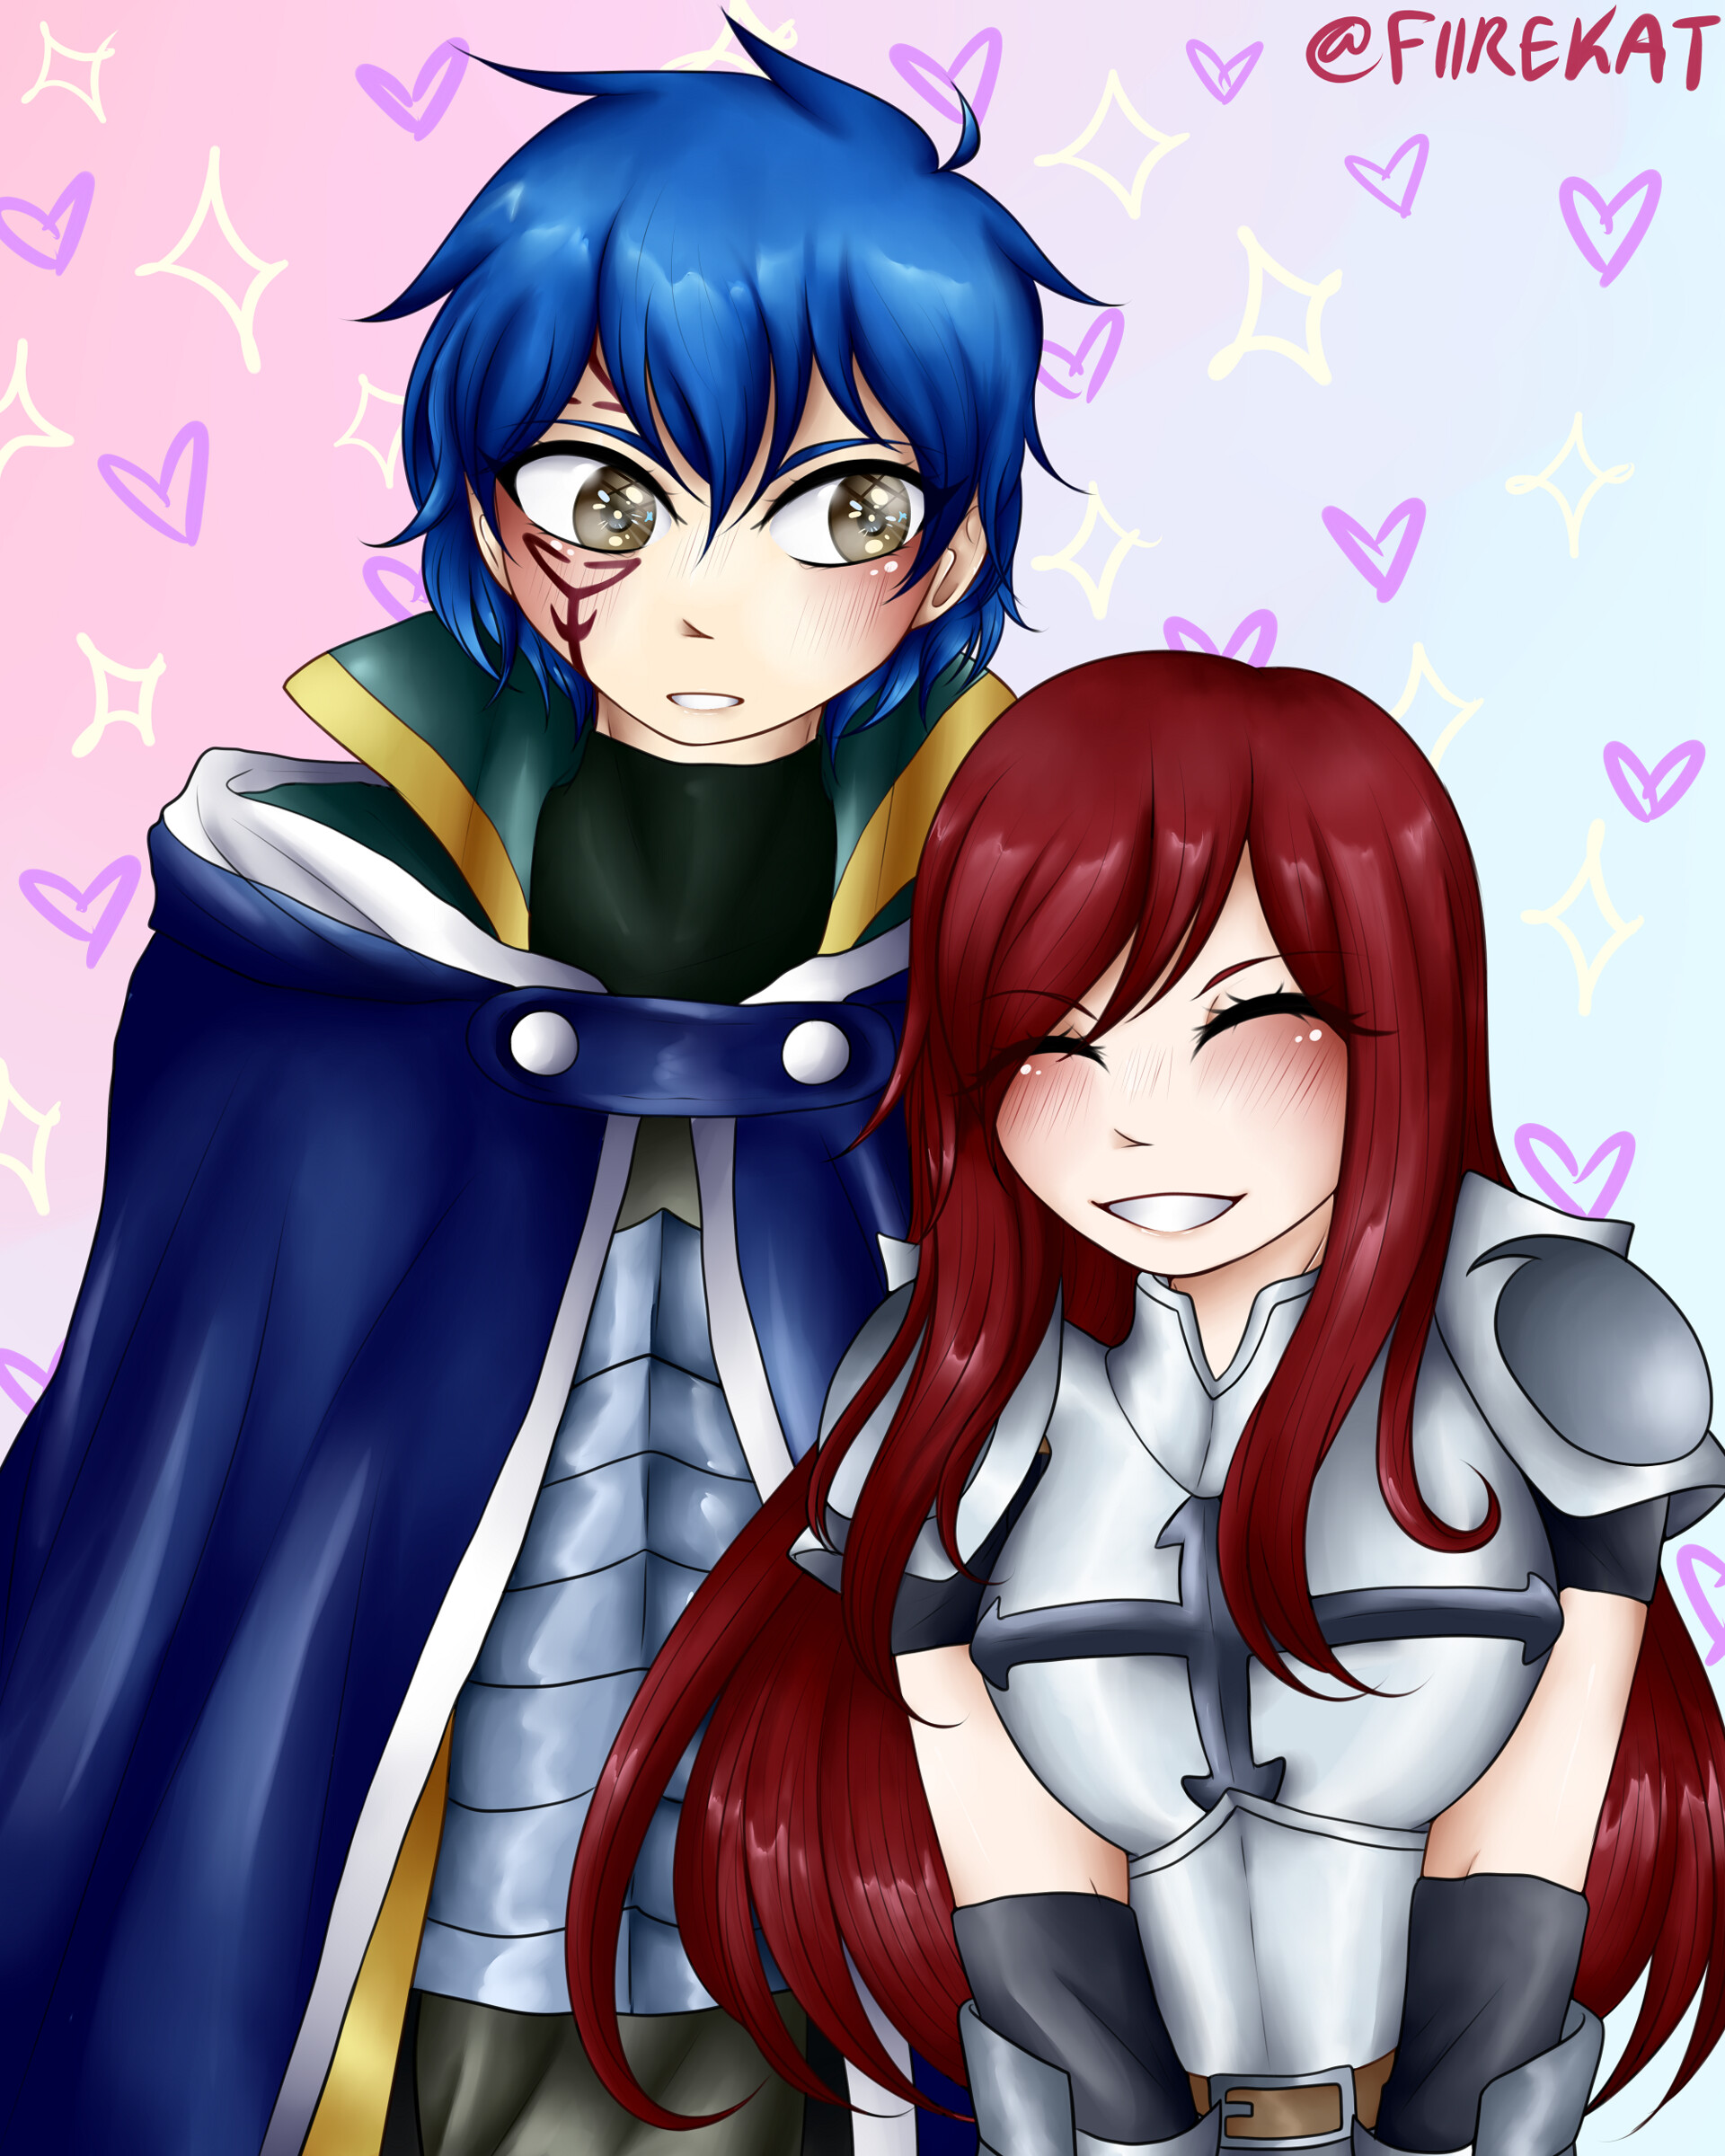 Katharine Maxwell Jellal And Erza #jellal fernandes #fairy tail #jellal #fairy tail jellal #i spent a whole four minutes on this please worship it. katharine maxwell jellal and erza